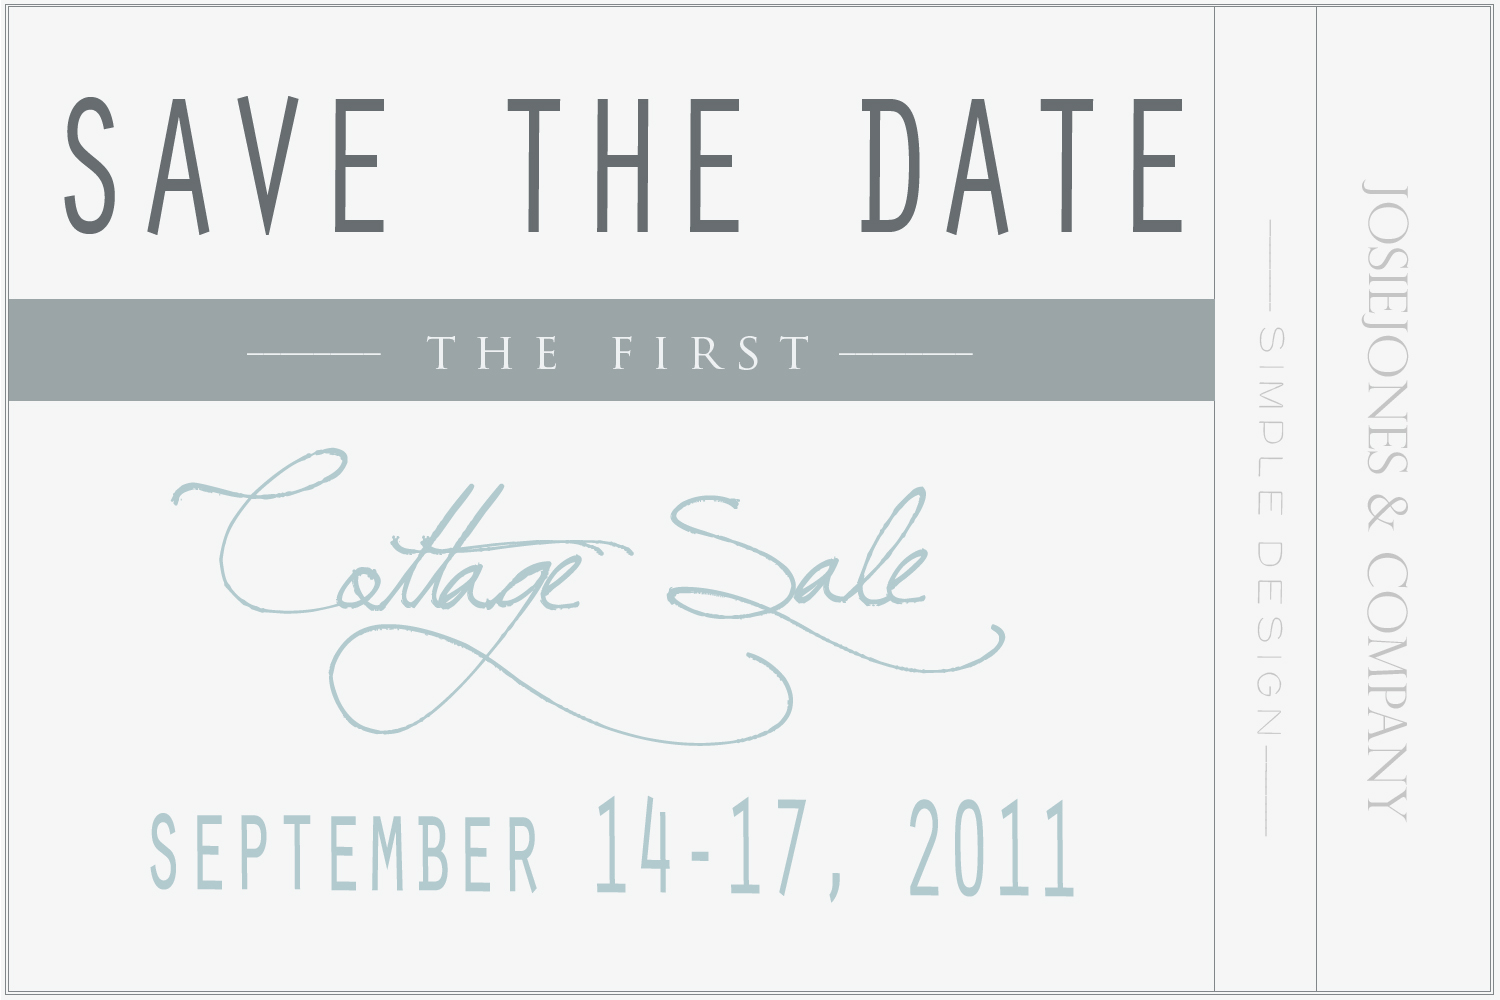 save the date cottage sale